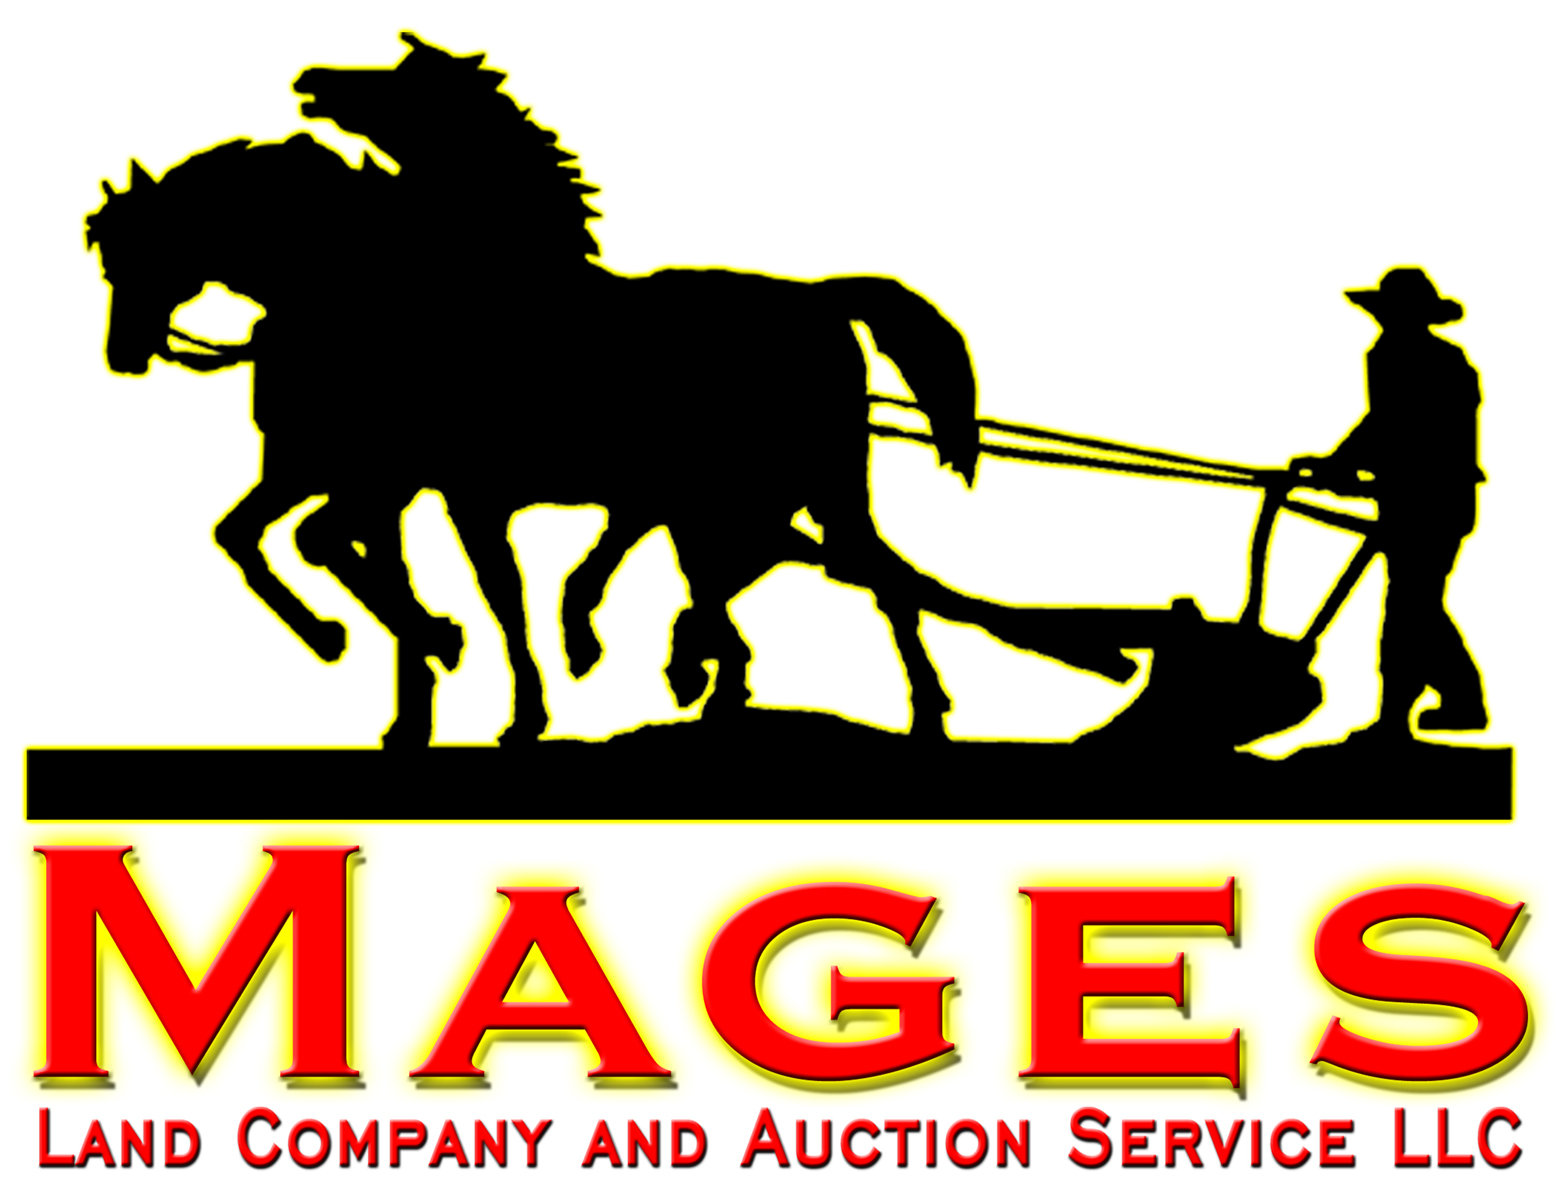 Mages Land Company and Auction Service L